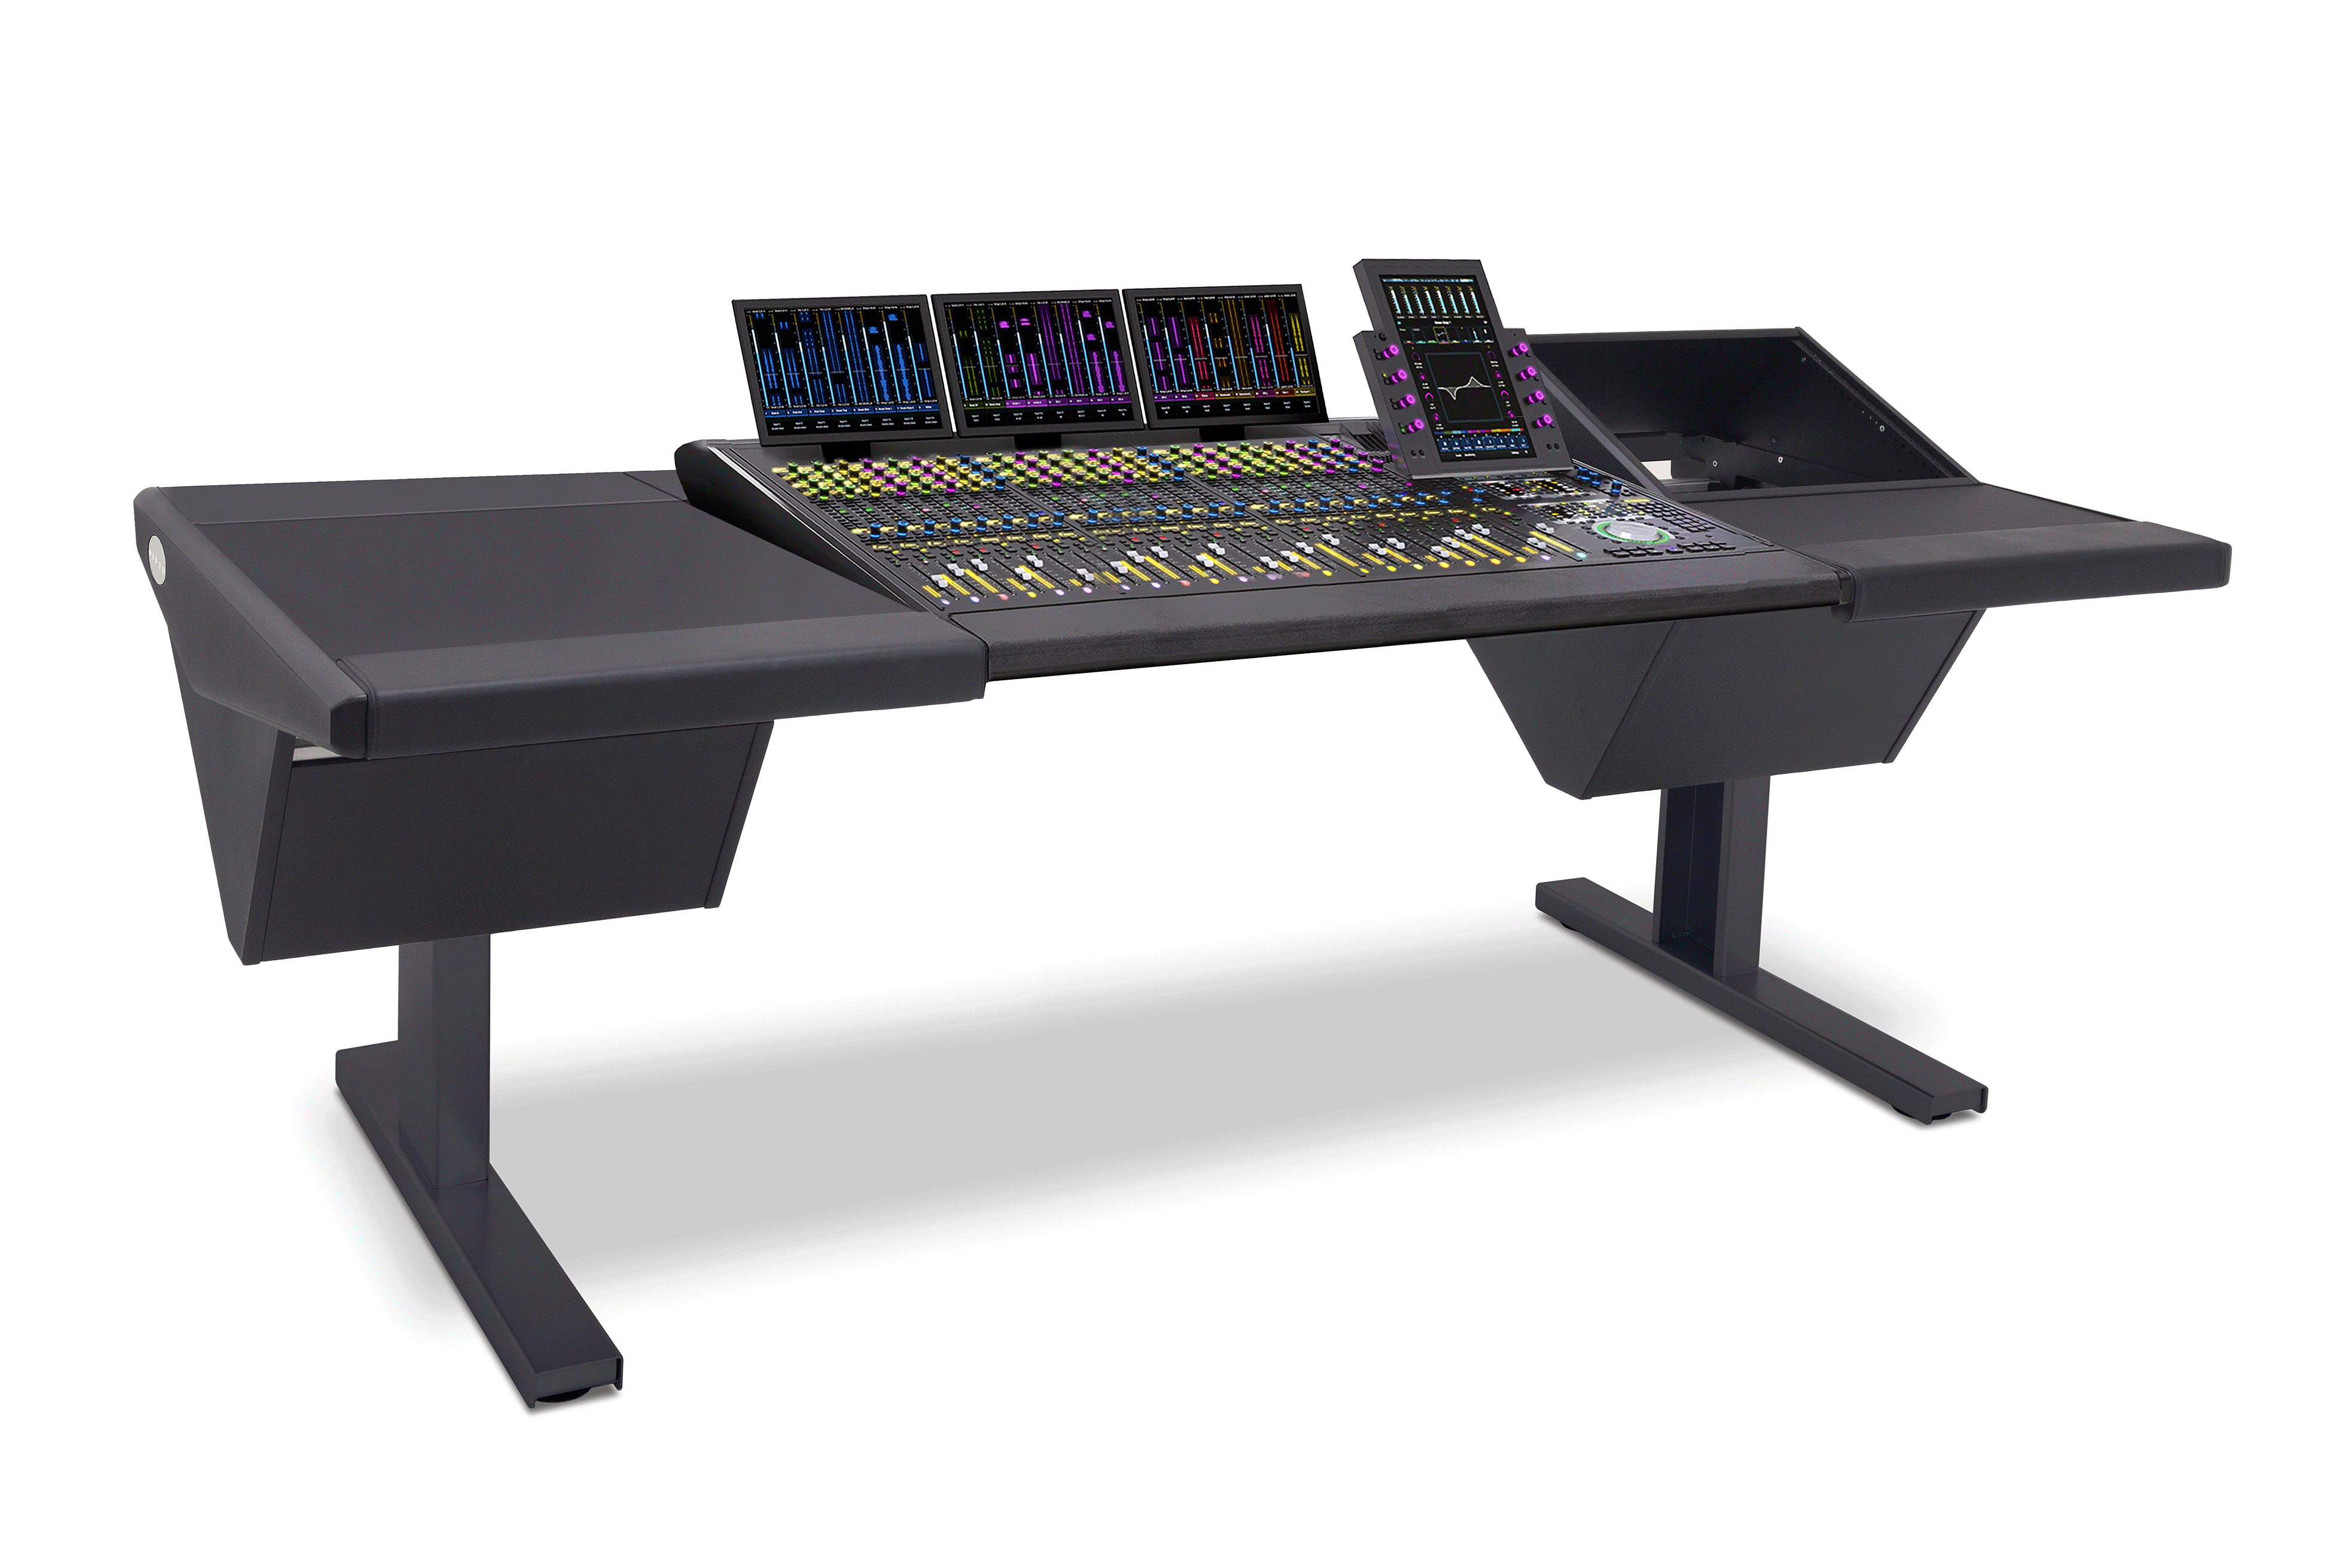 24 Fader System with Desk (L) and Rack (R)